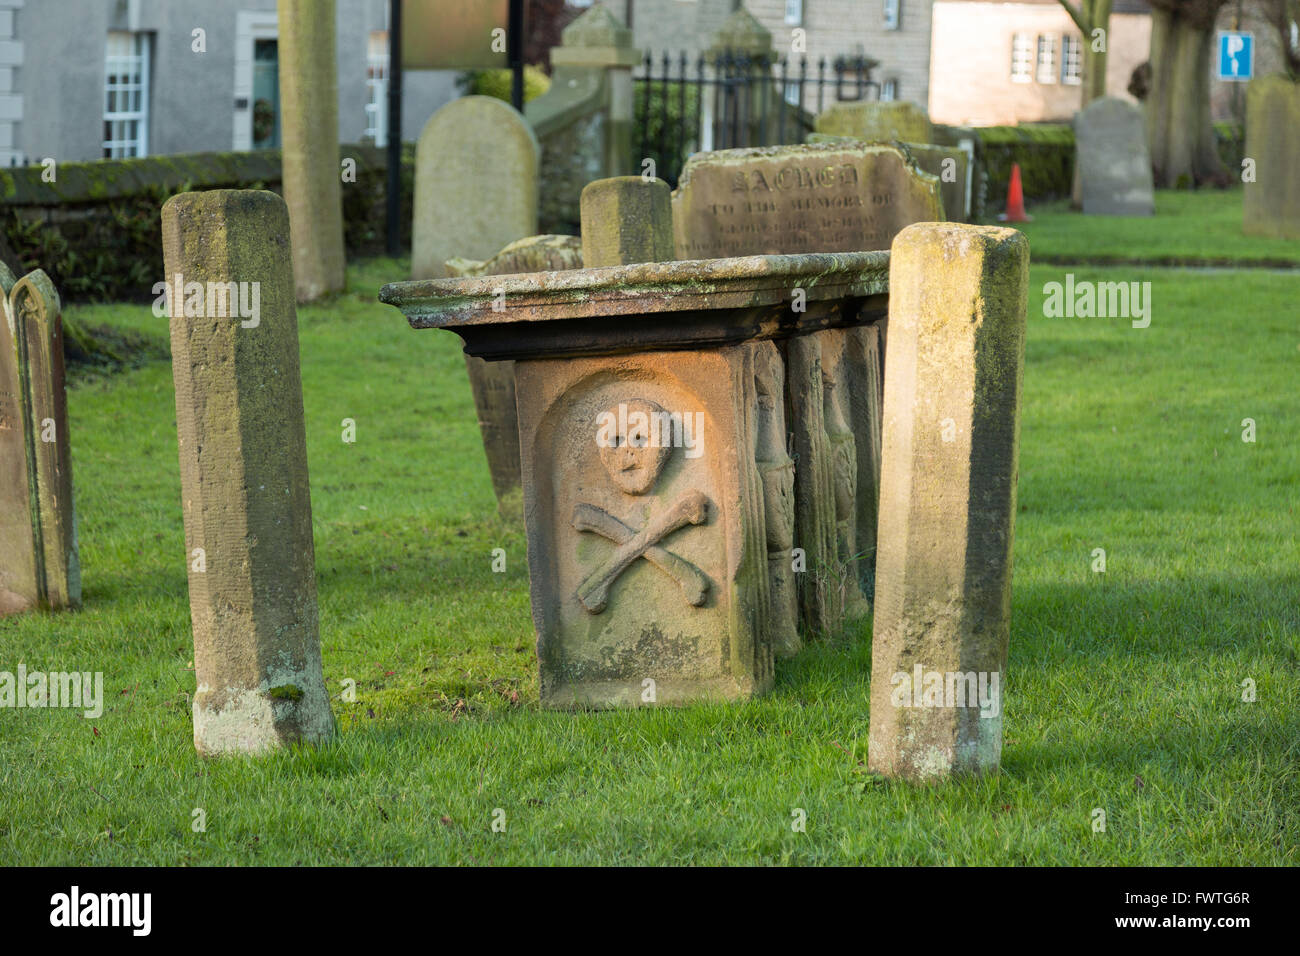 Tomb reflecting the past in Eyam when the village was ravaged by the Bubonic plague in 1665-66. - Stock Image